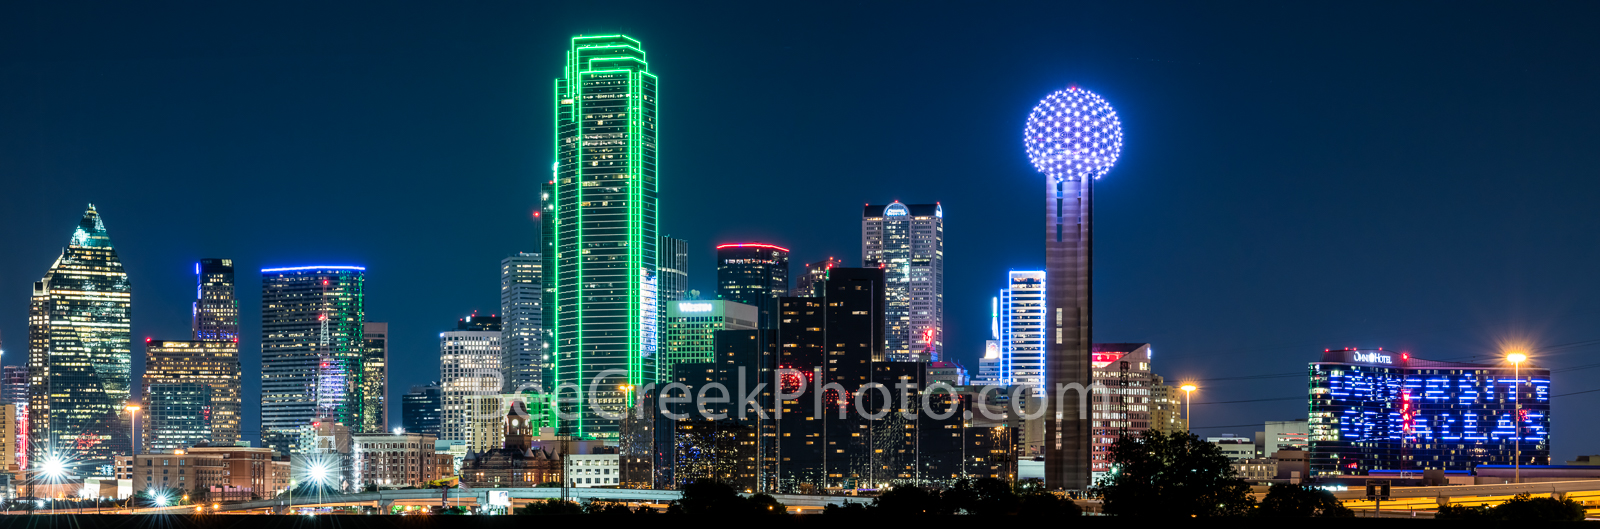 dallas skyline, night, dallas texas, downtown dallas, city of dallas, downtown, dallas tx, reunion tower, heritage plaza, fountain place, bank of america, omni hotel, colorful, images of dallas, dalla, photo